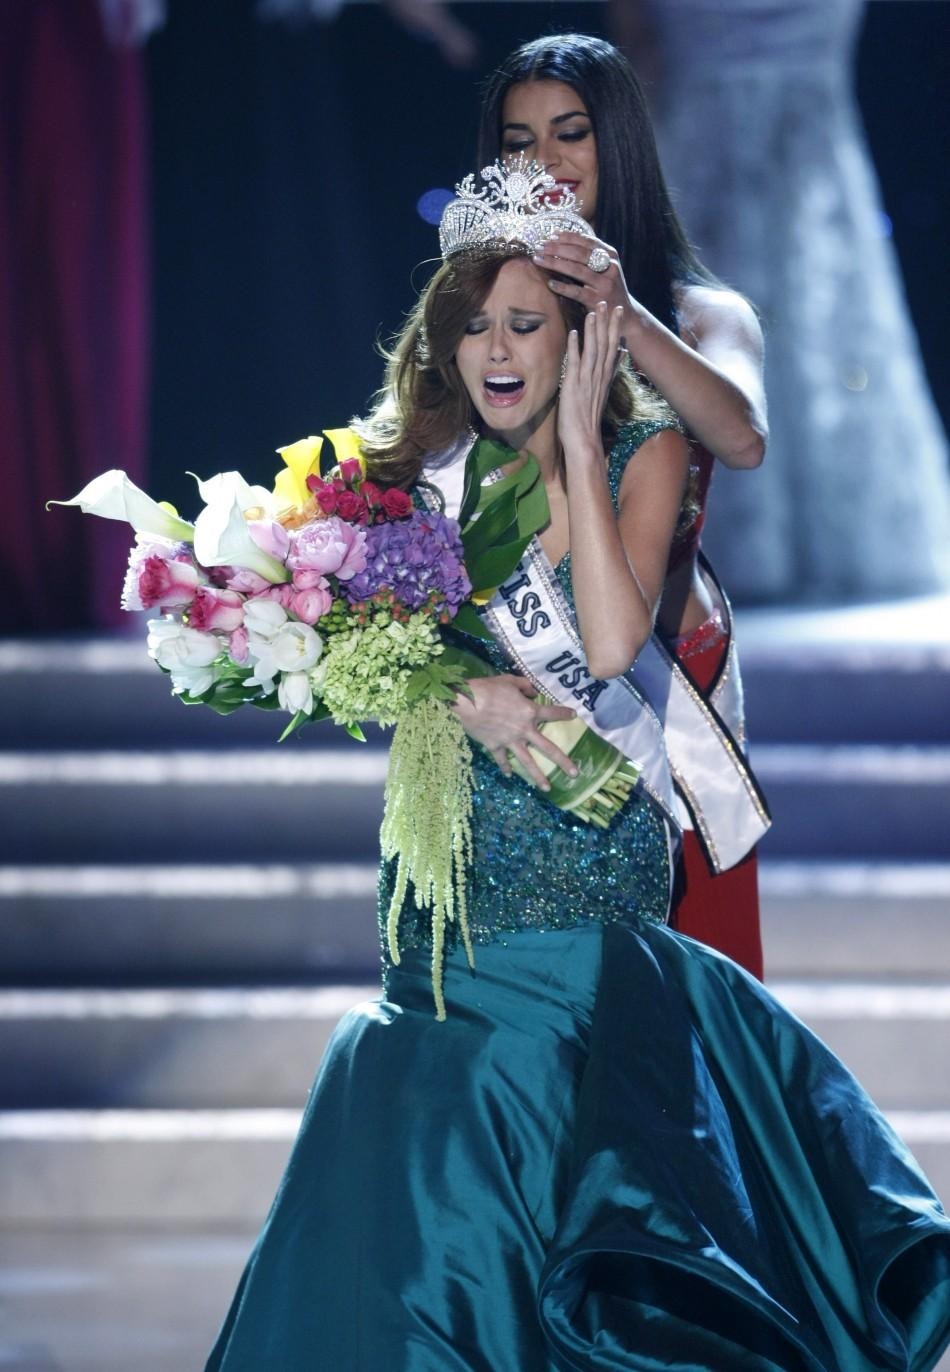 Miss California Campanella reacts as she is crowned Miss USA 2011 during the Miss USA pageant Las Vegas